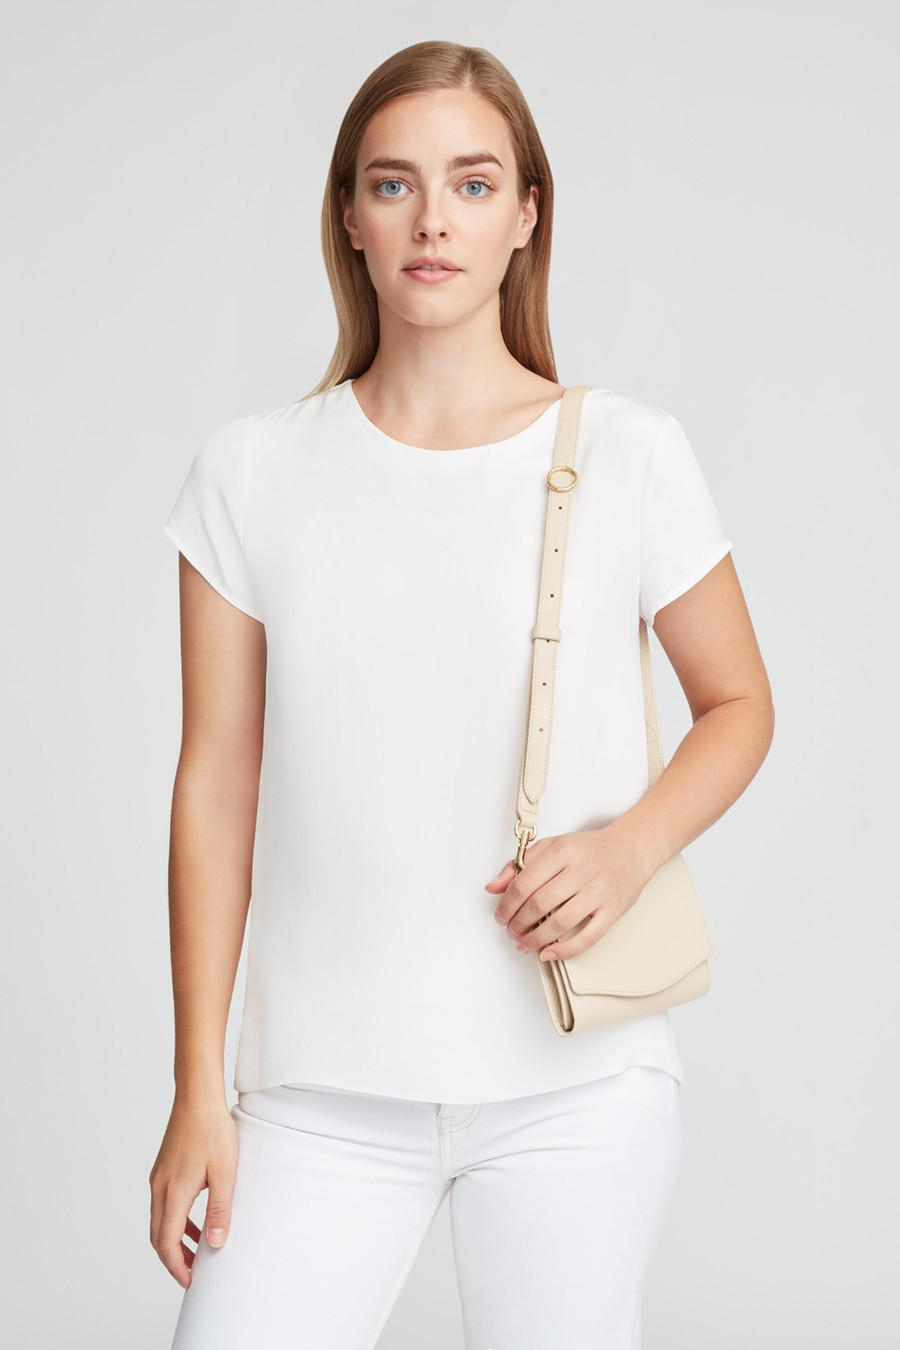 Women's Adjustable Strap in Ecru   Pebbled Leather by Cuyana 3